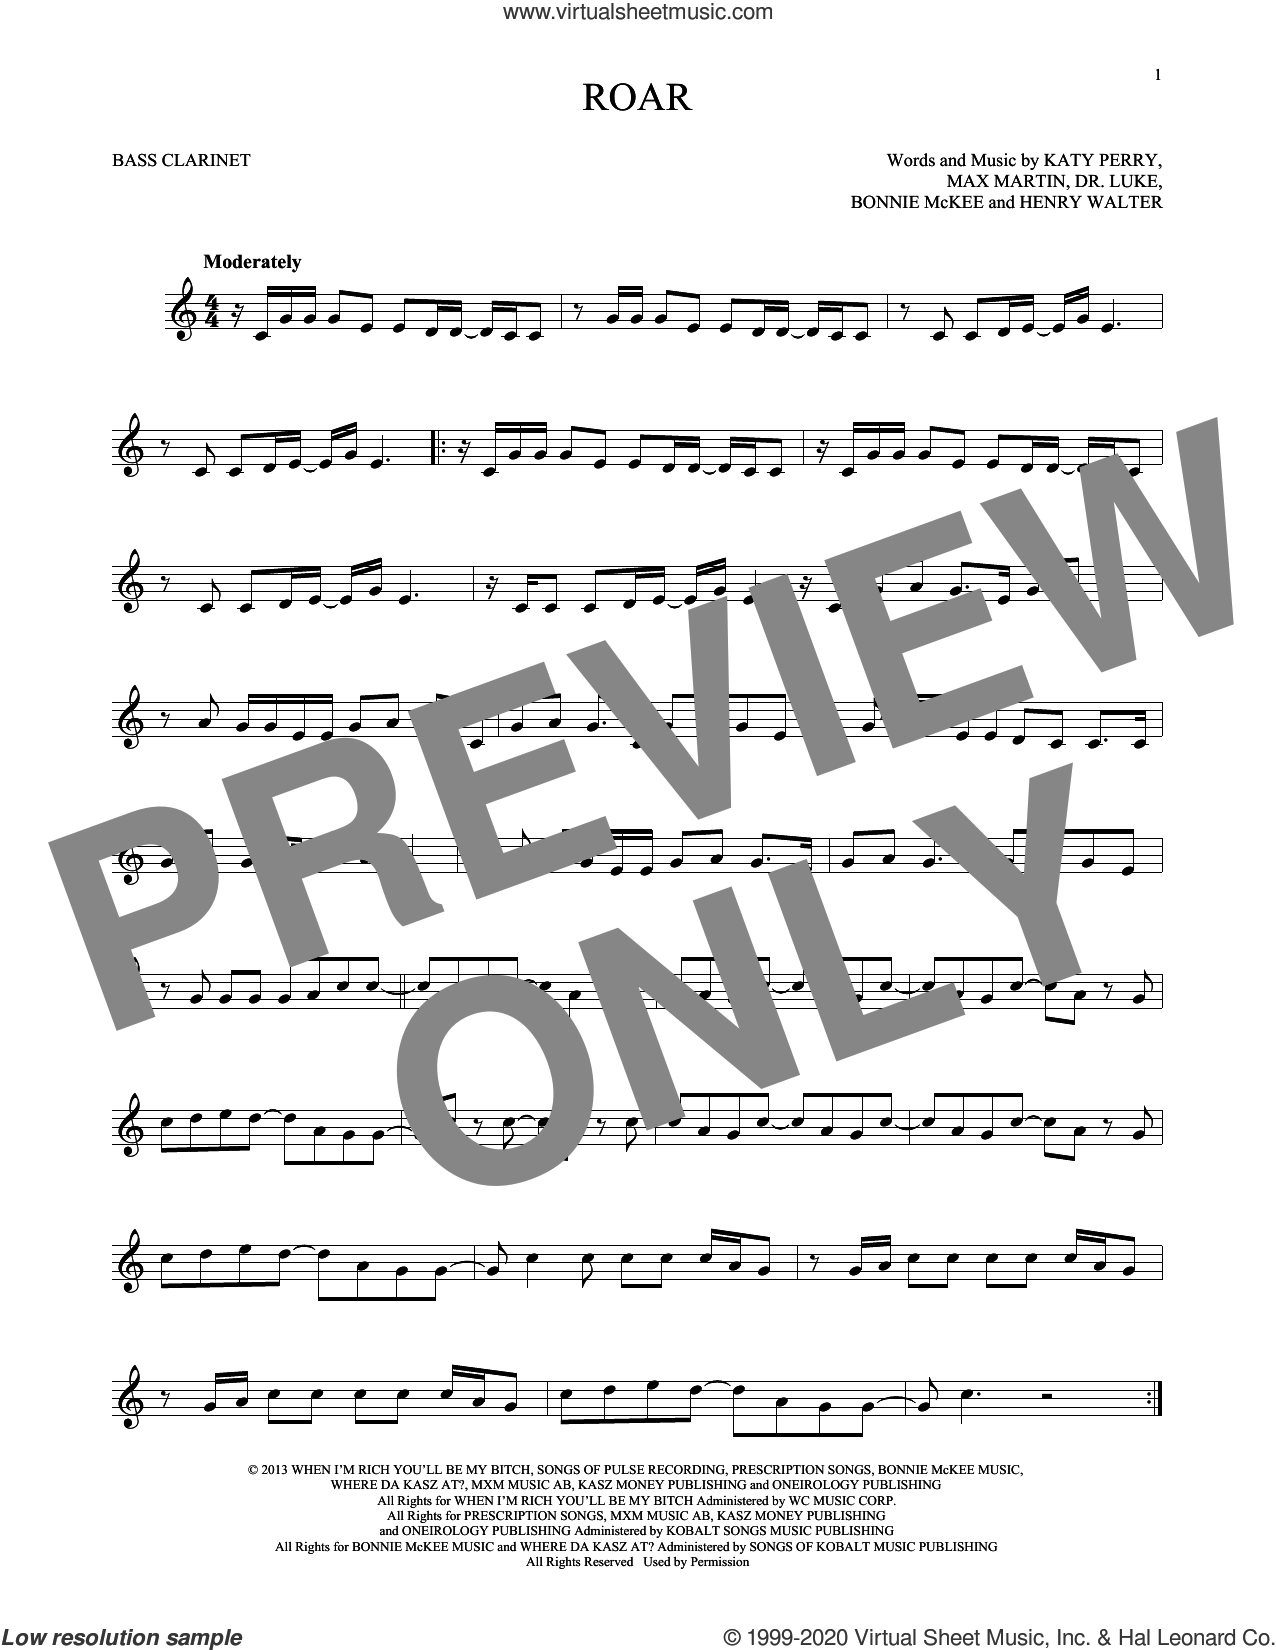 Roar sheet music for Bass Clarinet Solo (clarinetto basso) by Katy Perry, Bonnie McKee, Dr. Luke, Henry Walter, Lukasz Gottwald and Max Martin, intermediate skill level